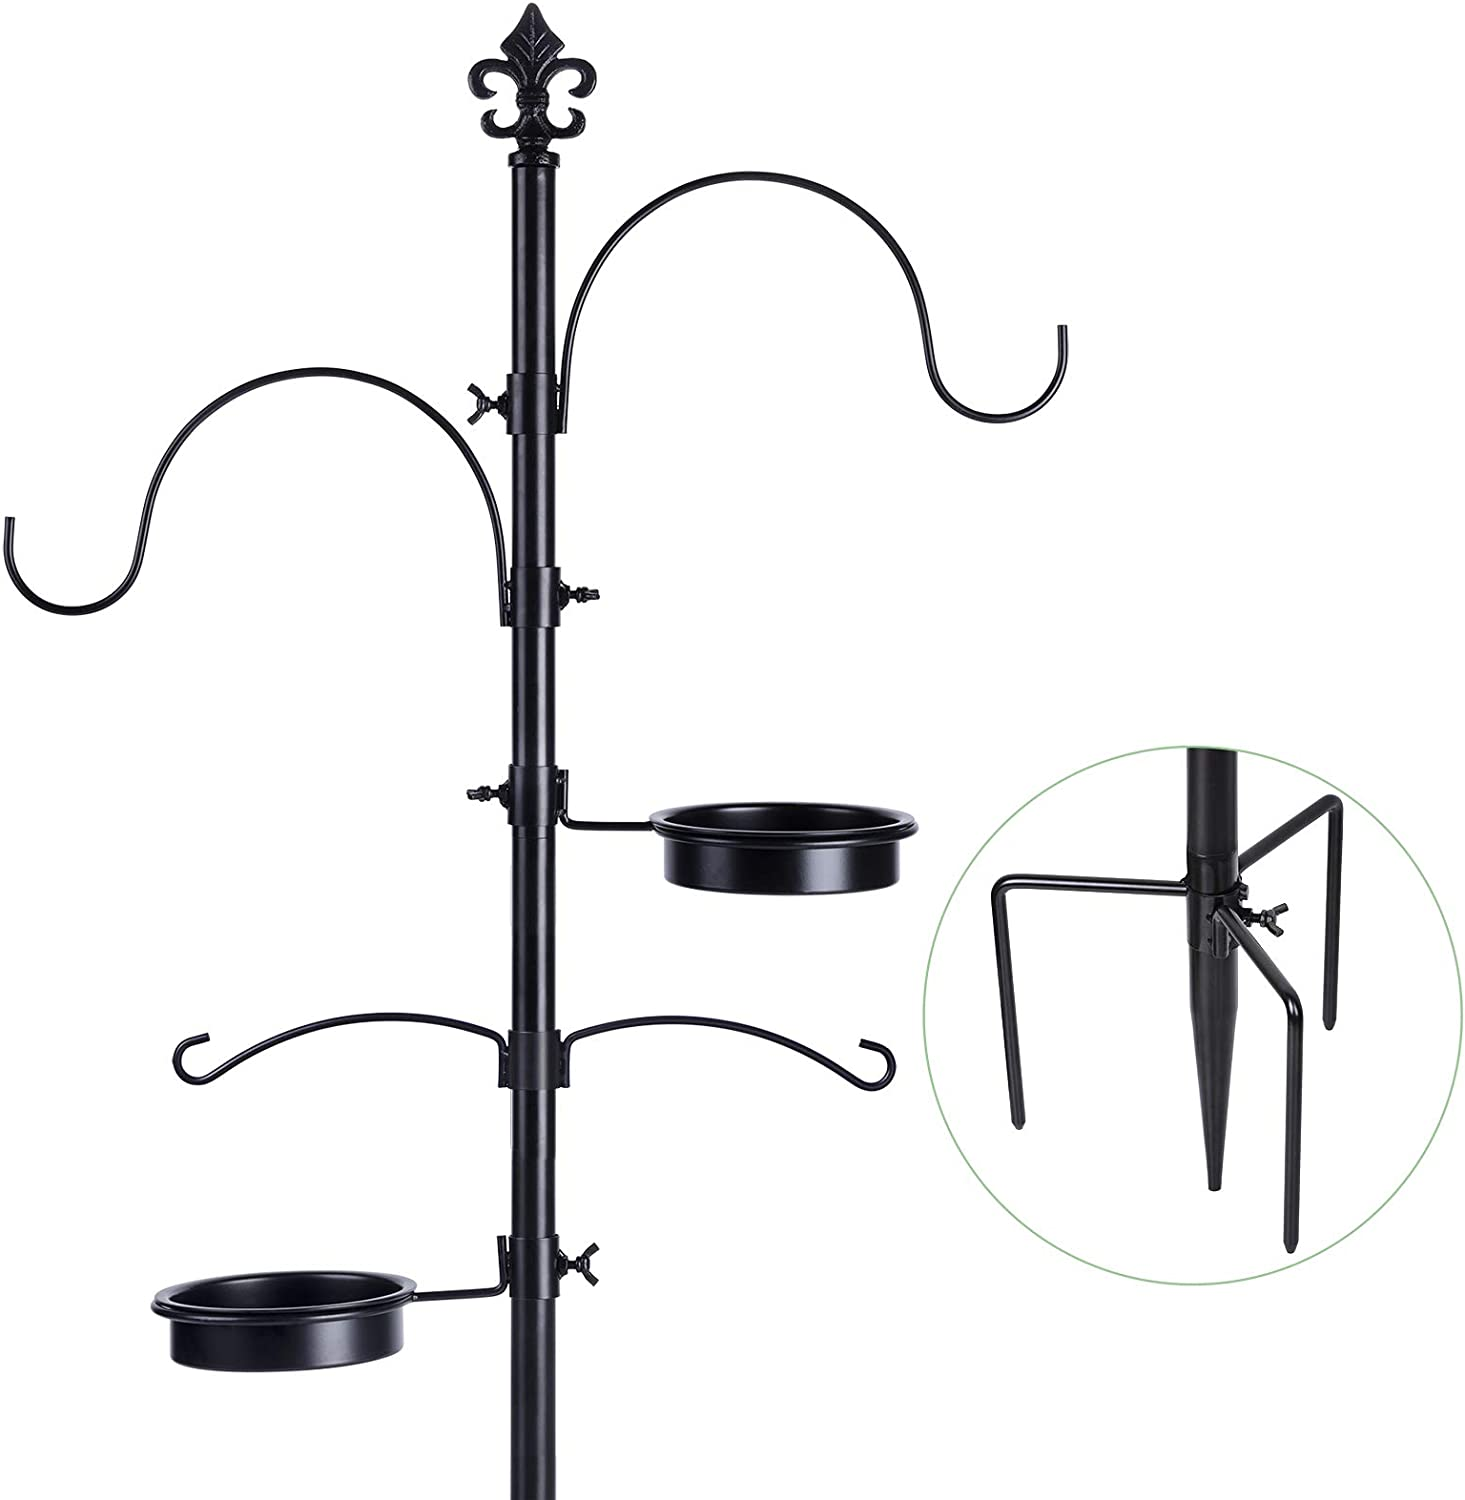 BOLITE 18014 Bird Feeding Station, Bird Feeder Pole Stand for Outside, Improved Prongs Design, Black